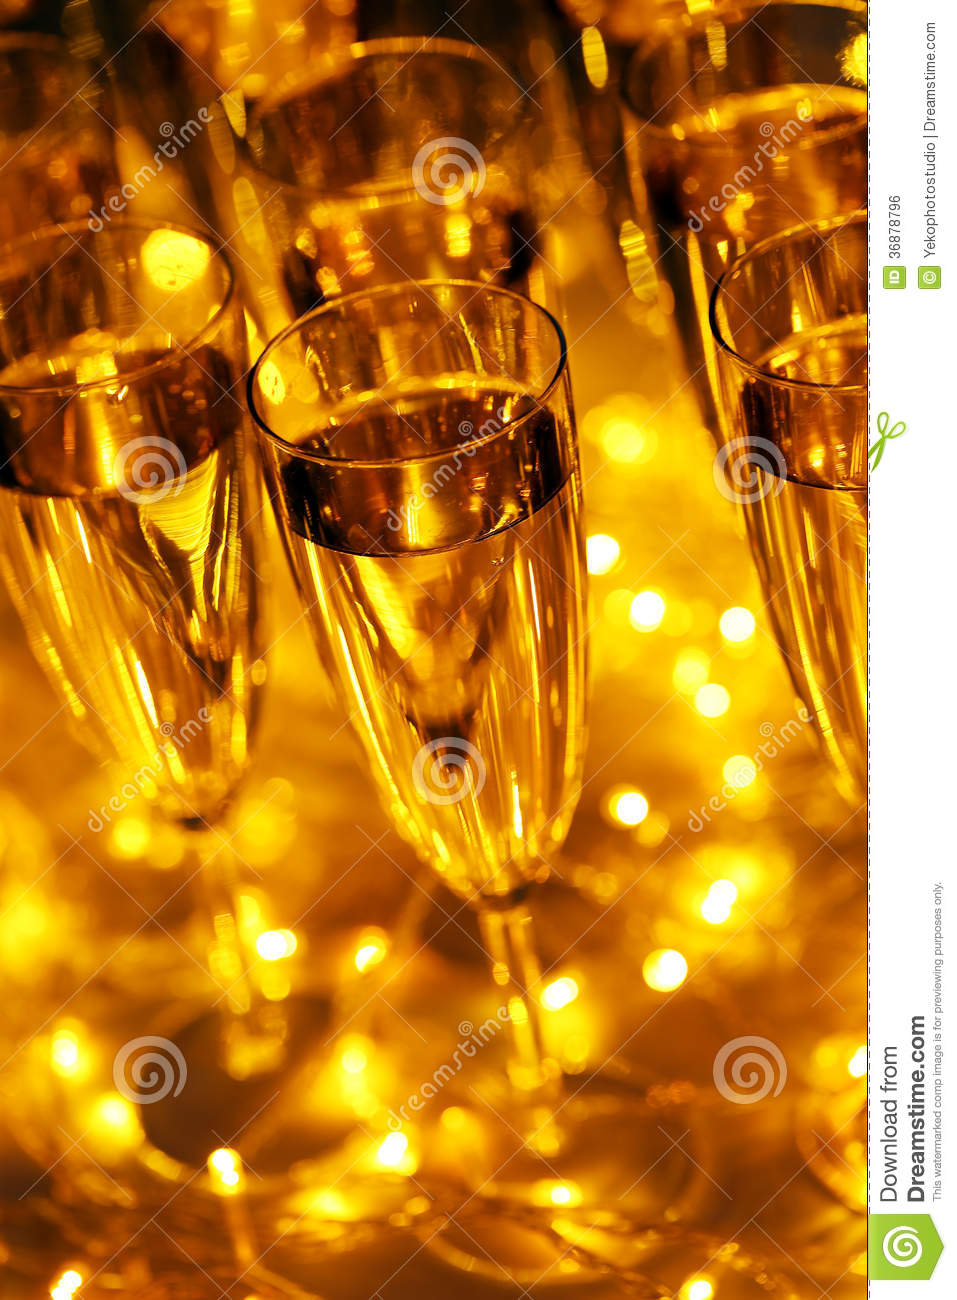 Download Vetro di champagne illustrazione di stock. Illustrazione di divertimento - 36878796